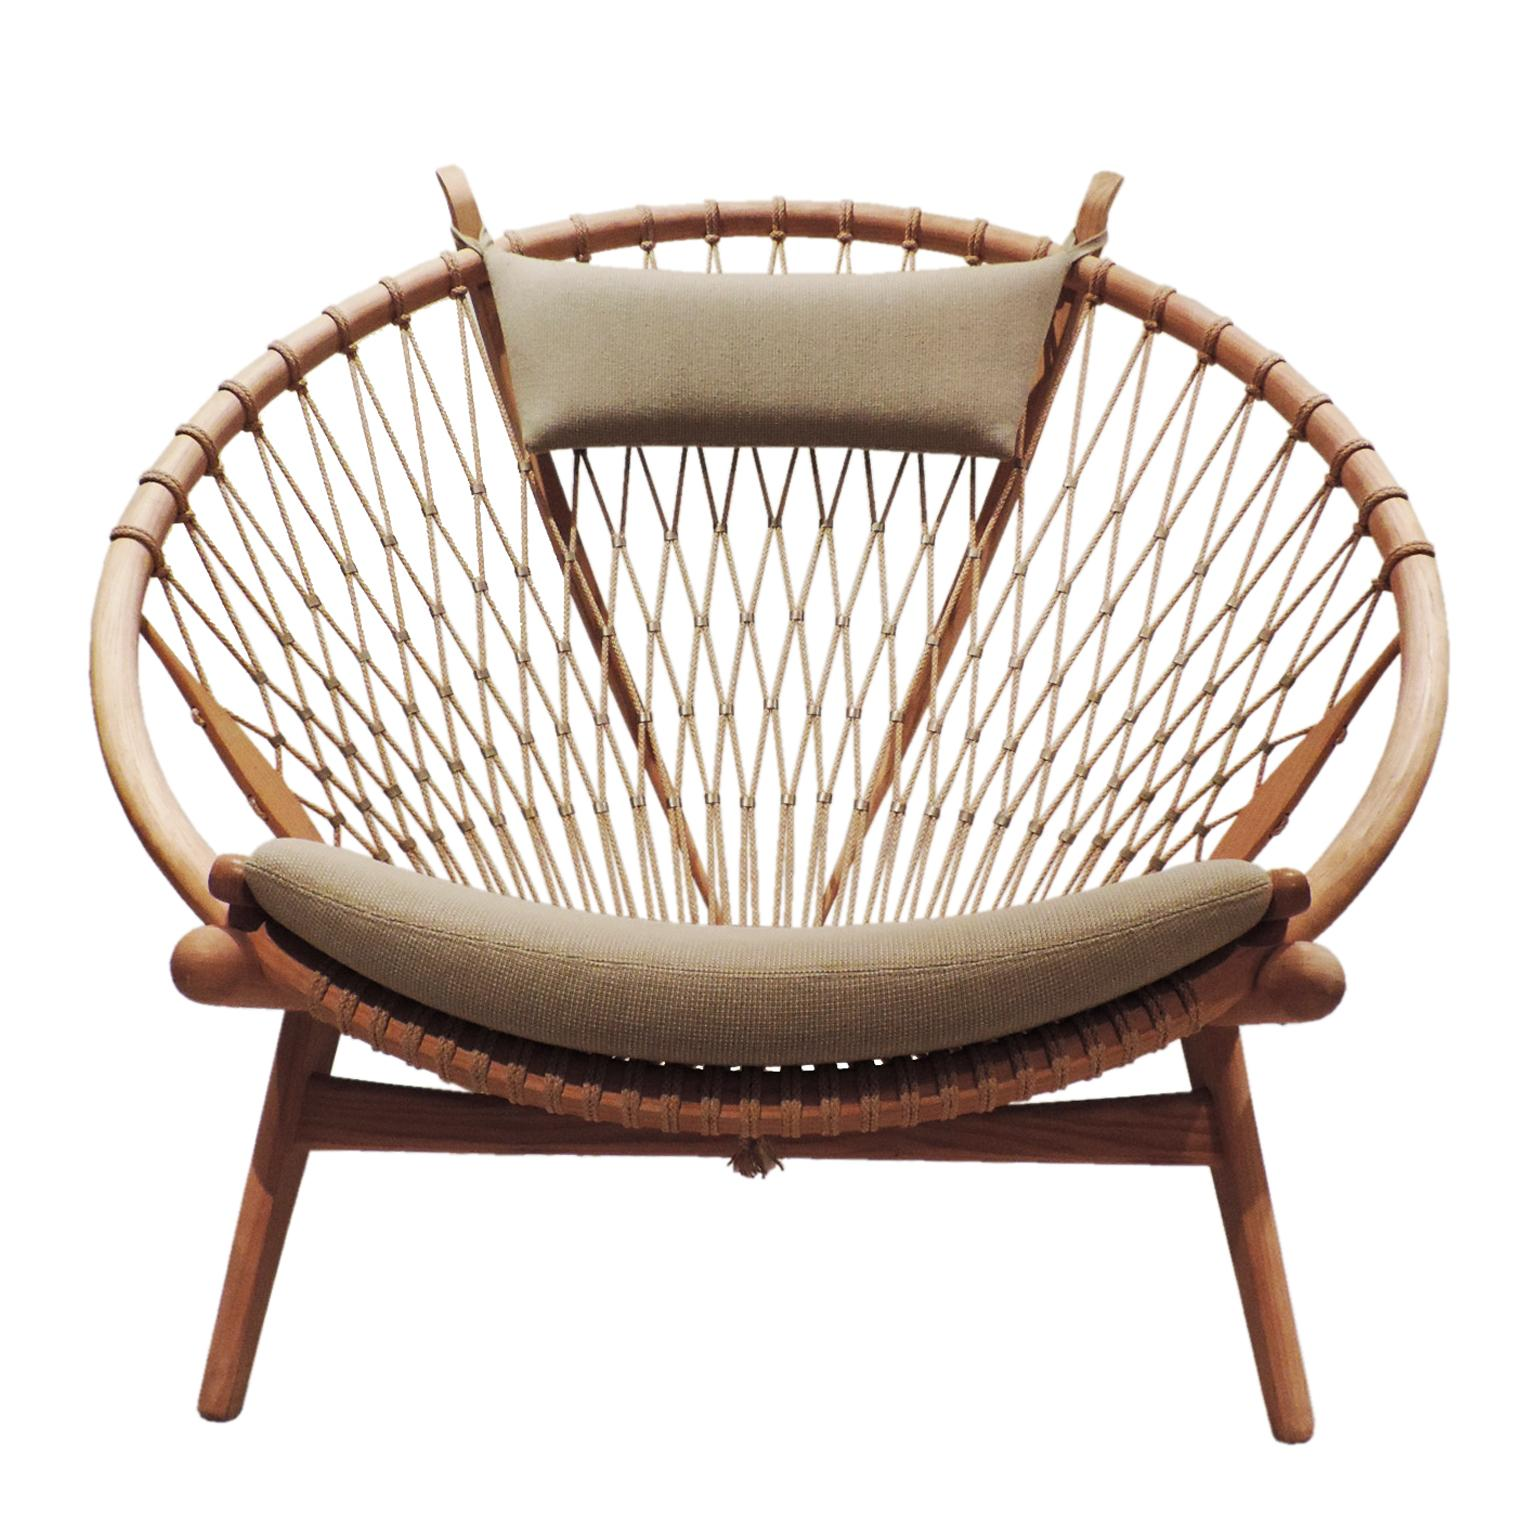 Early Circle JWegner Chair At 1stdibs Hans Pp130 QshCxBtrd